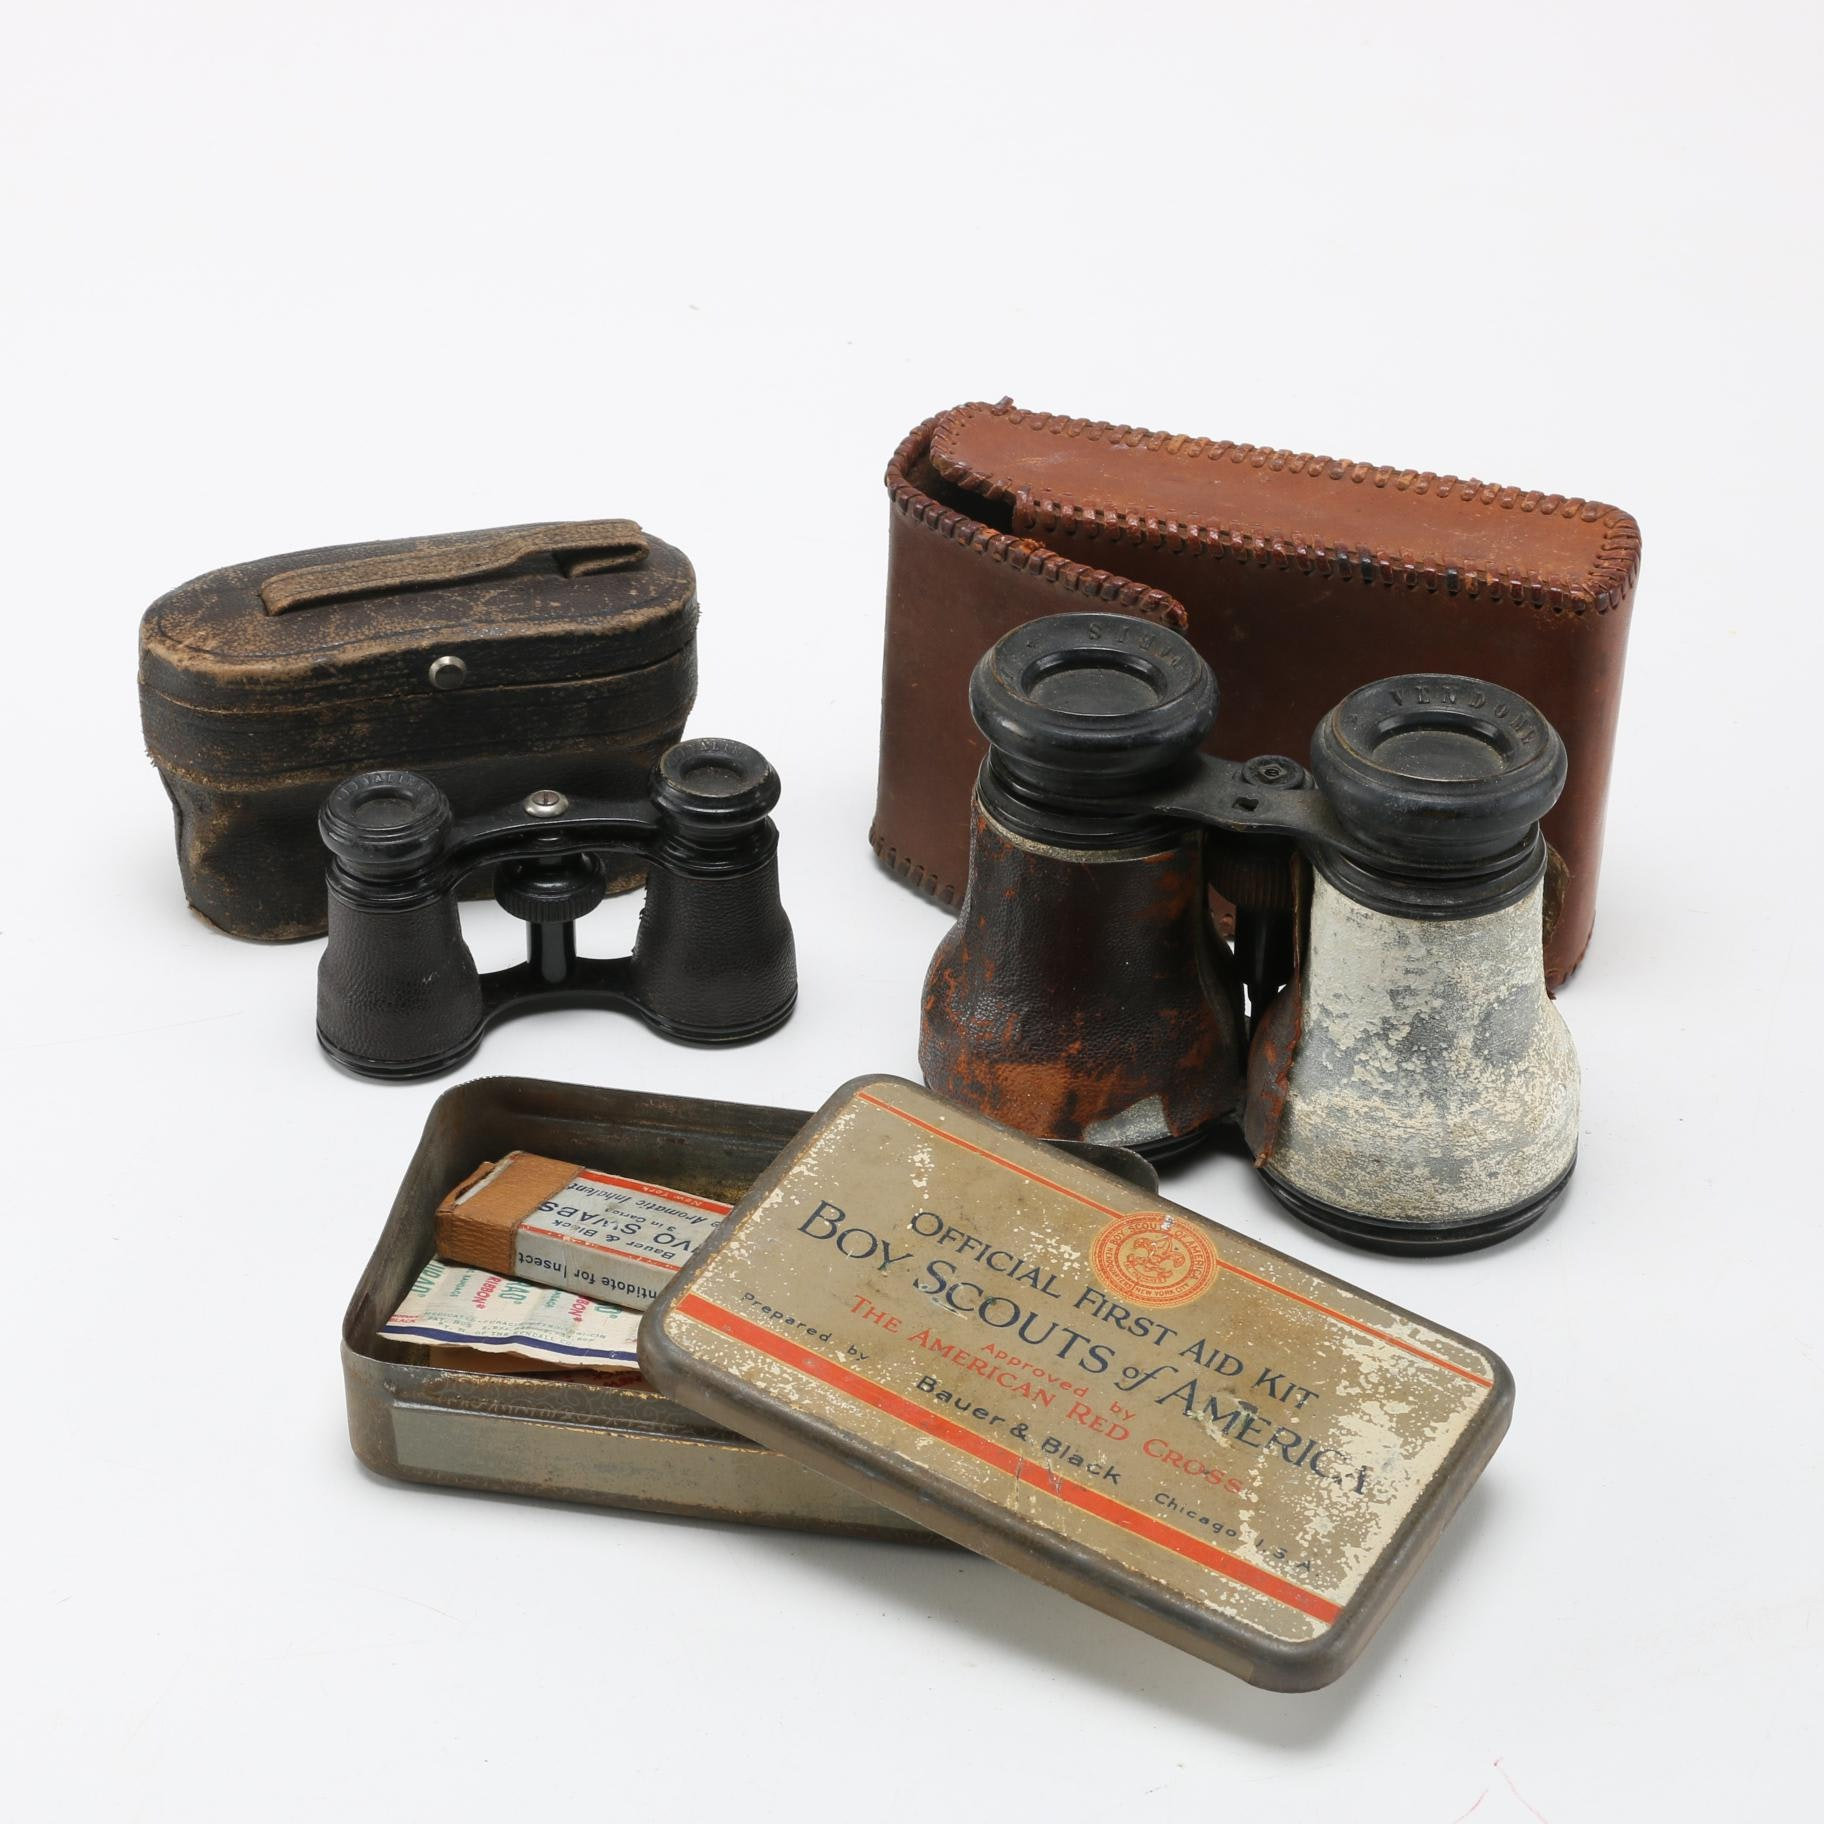 Vintage Boy Scouts First Aid Kit and Binoculars